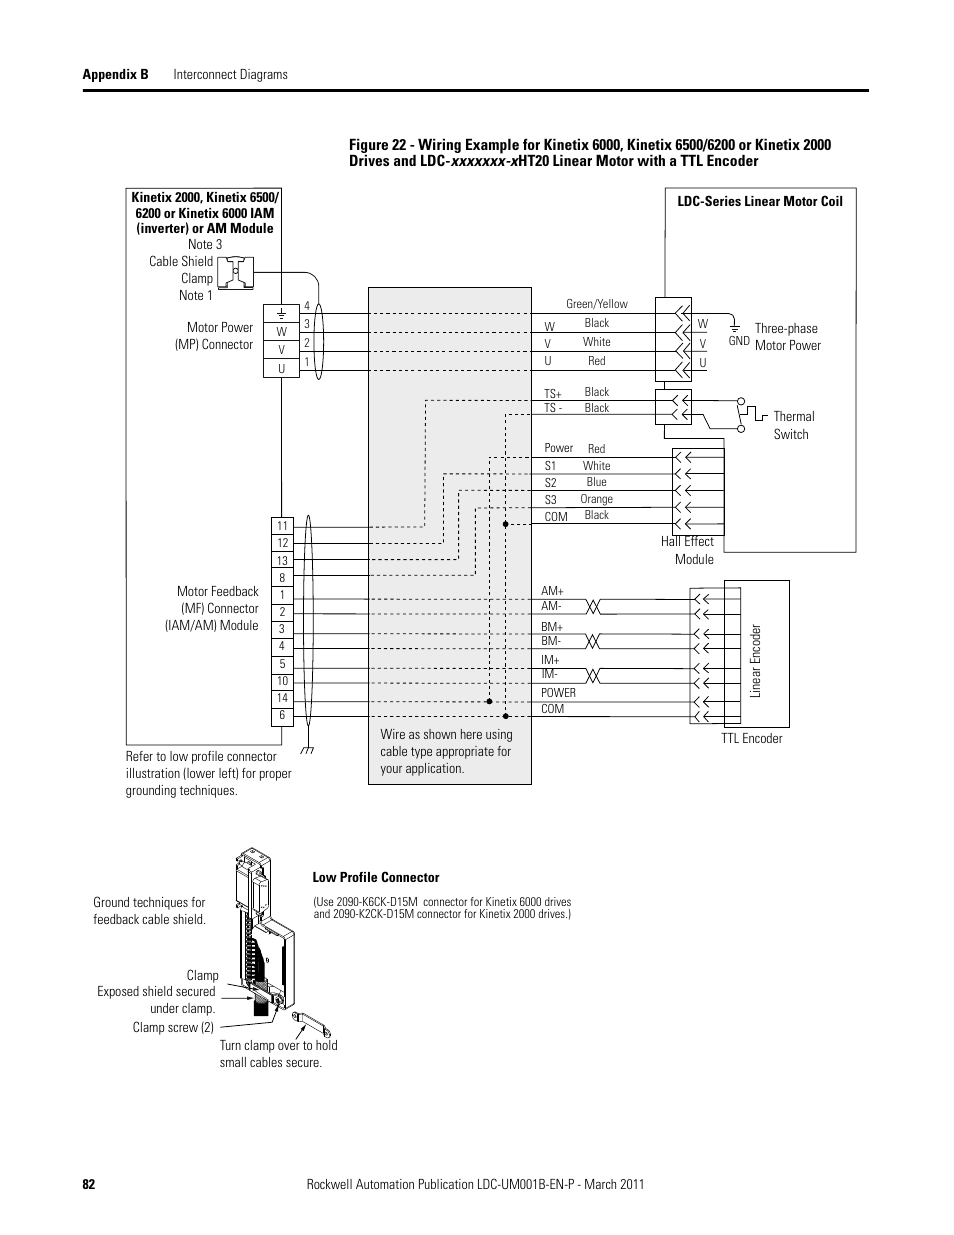 Ultra3000 Drives And Ldc Rockwell Automation Iron Core Linear Servo Wiring Red Black White Motors User Manual Page 82 98